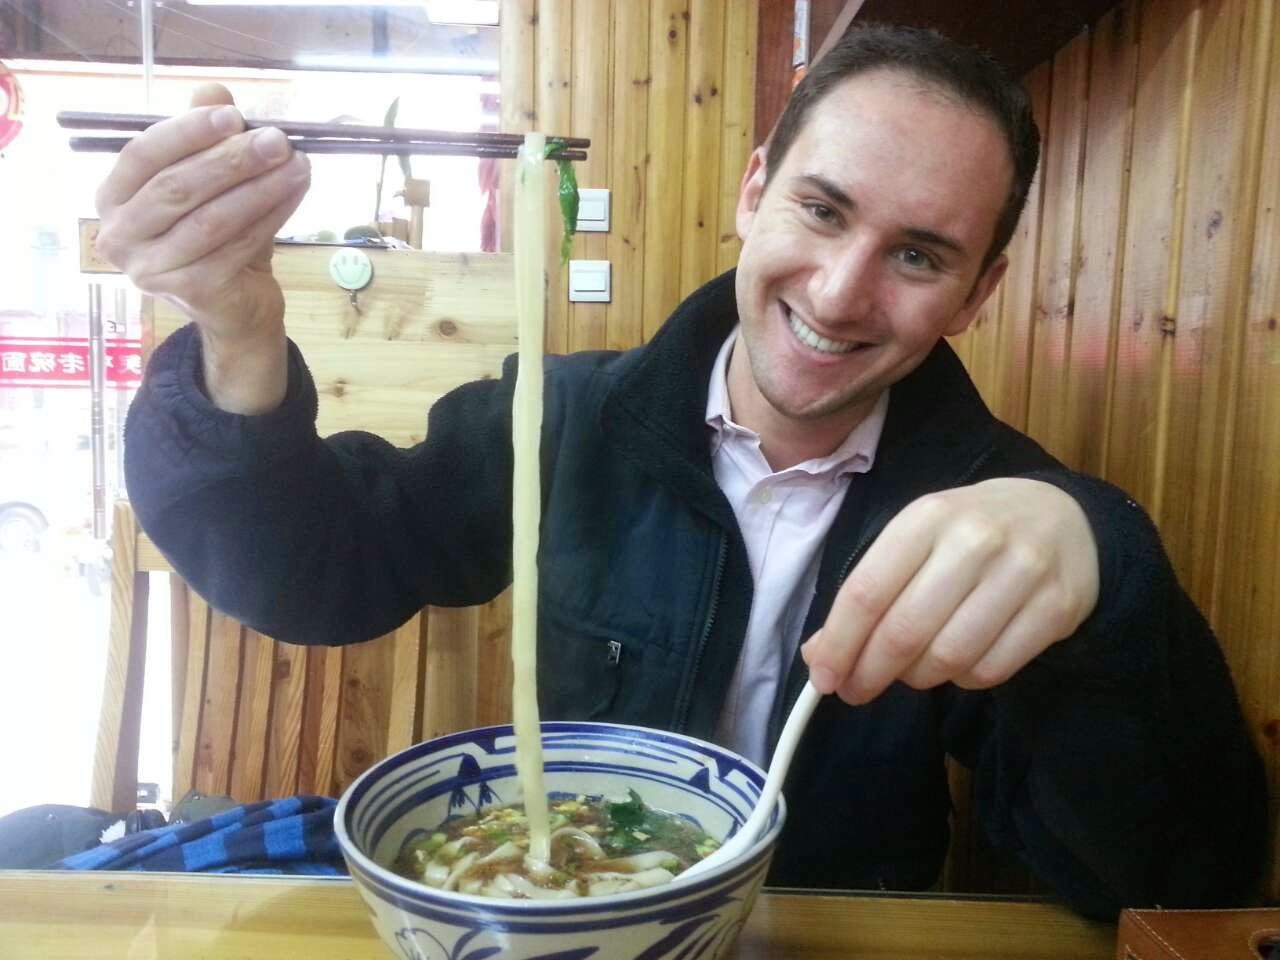 Macaulay student with noodles in restaurant during study abroad trip to China